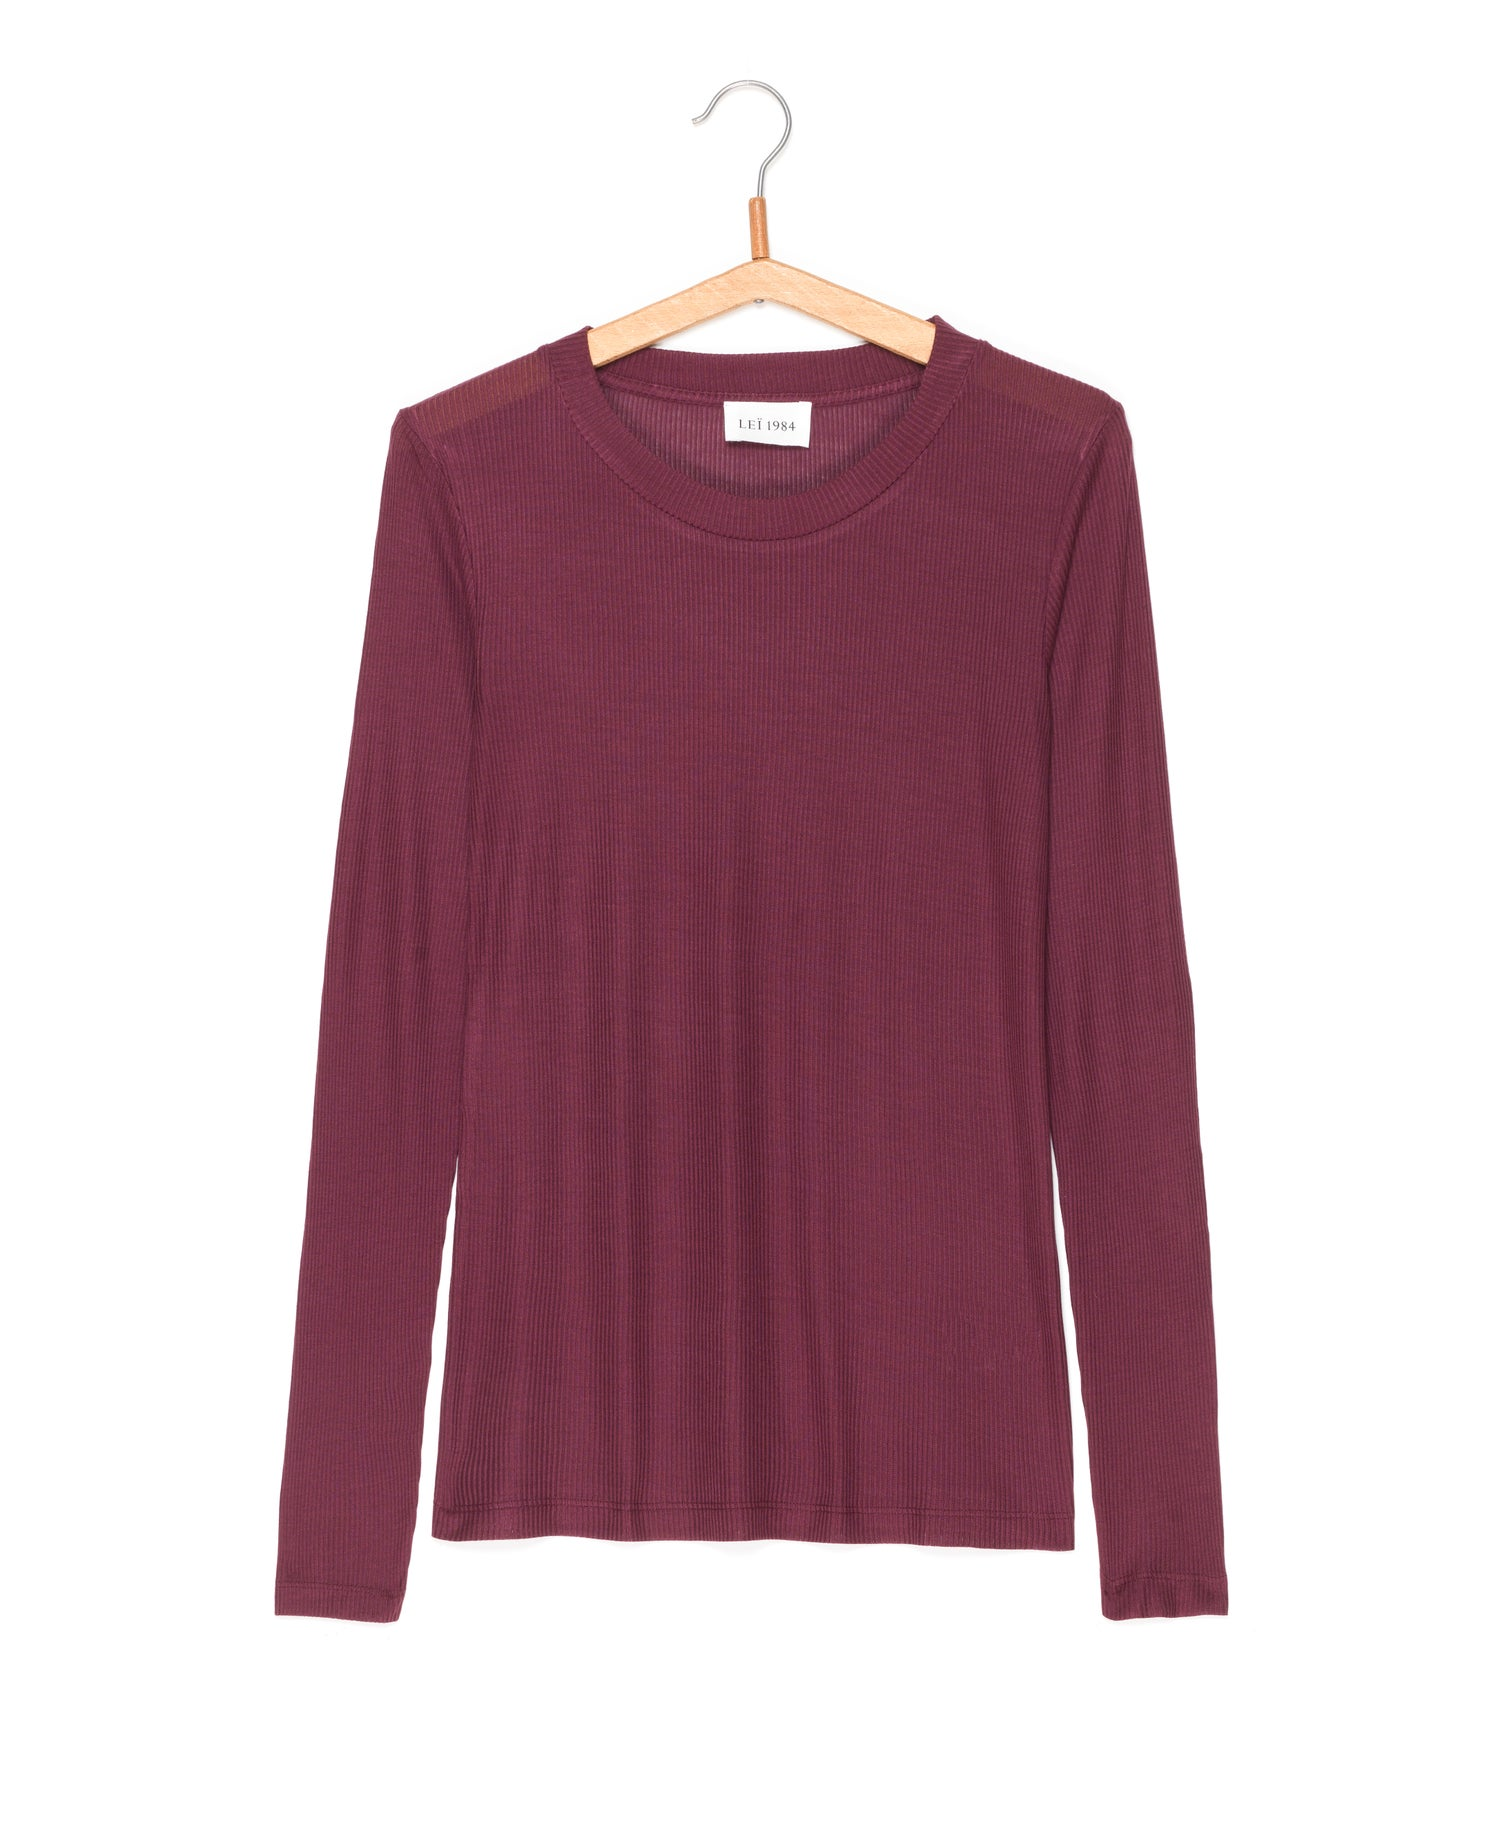 Image of Top manches longues côtes GEORGETTE 55€ -50%